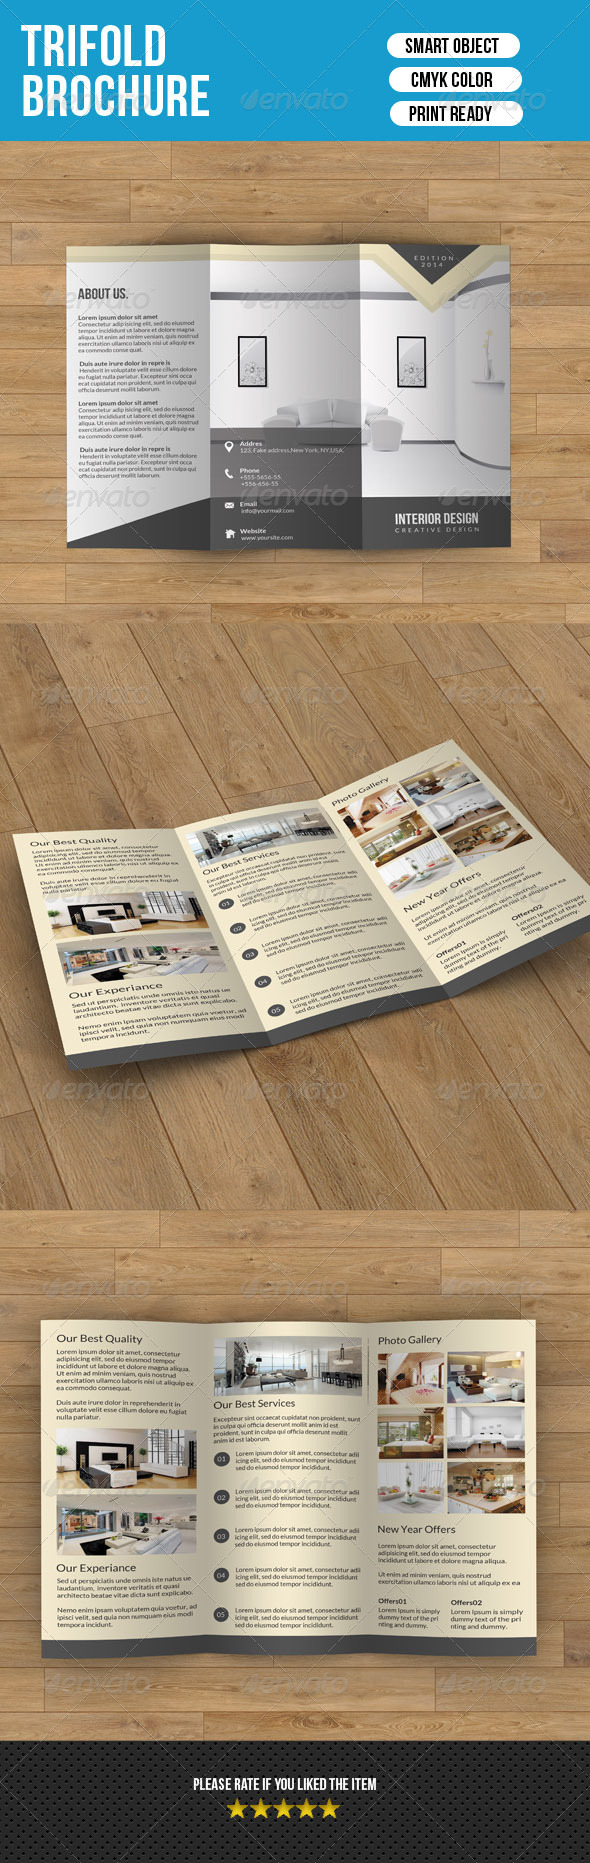 Minimal Trifold-Interior Design V2 - Corporate Brochures